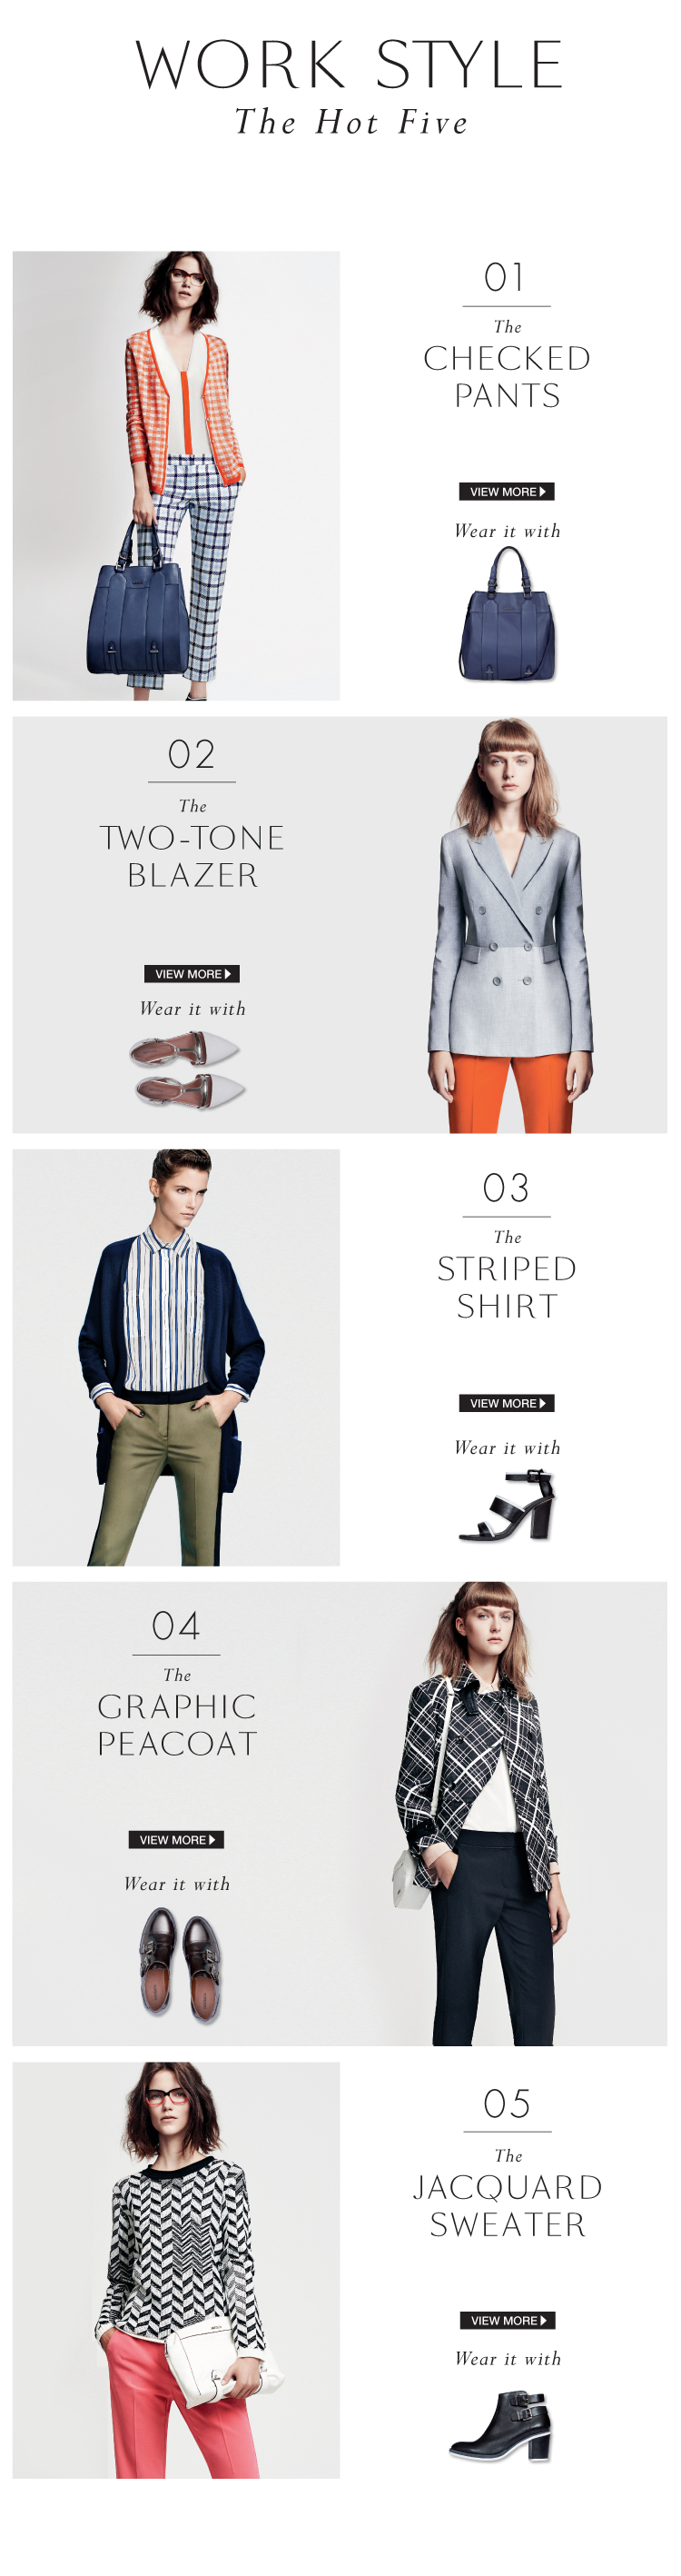 MAX&Co. work style